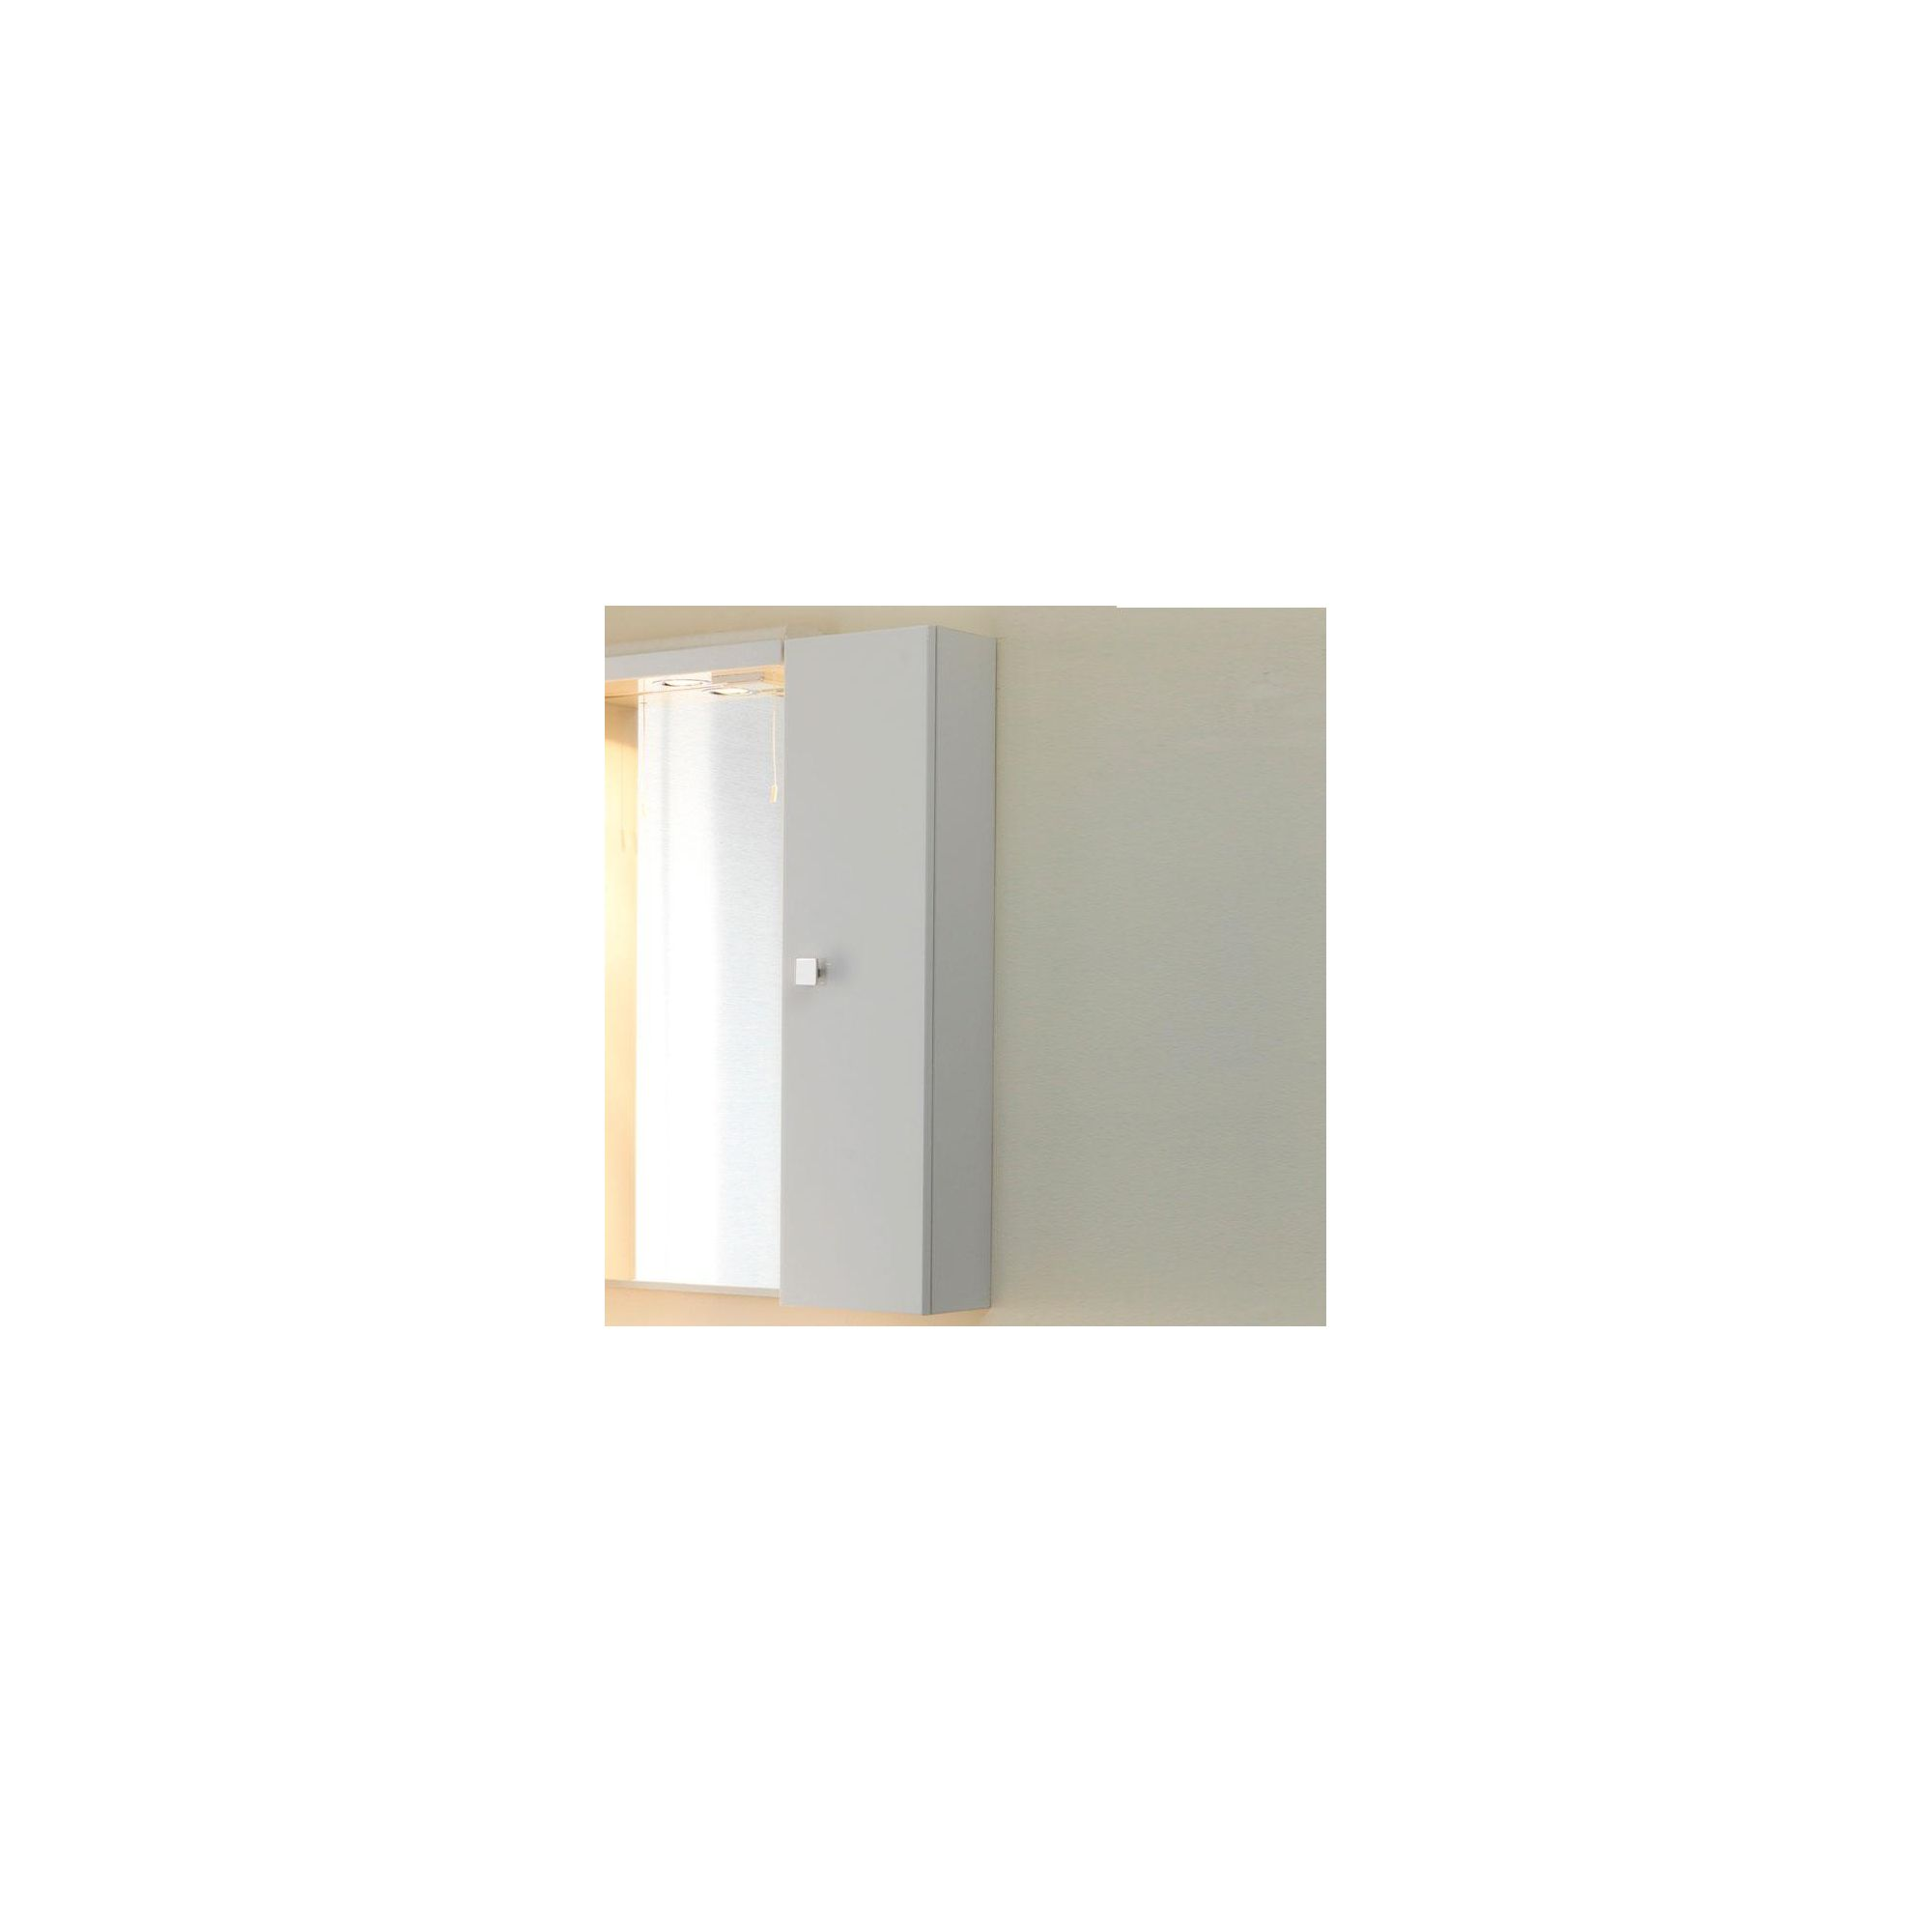 Duchy Trevail White Wall Hung 1 Door Storage Cupboard - 200mm Wide x 167mm Deep